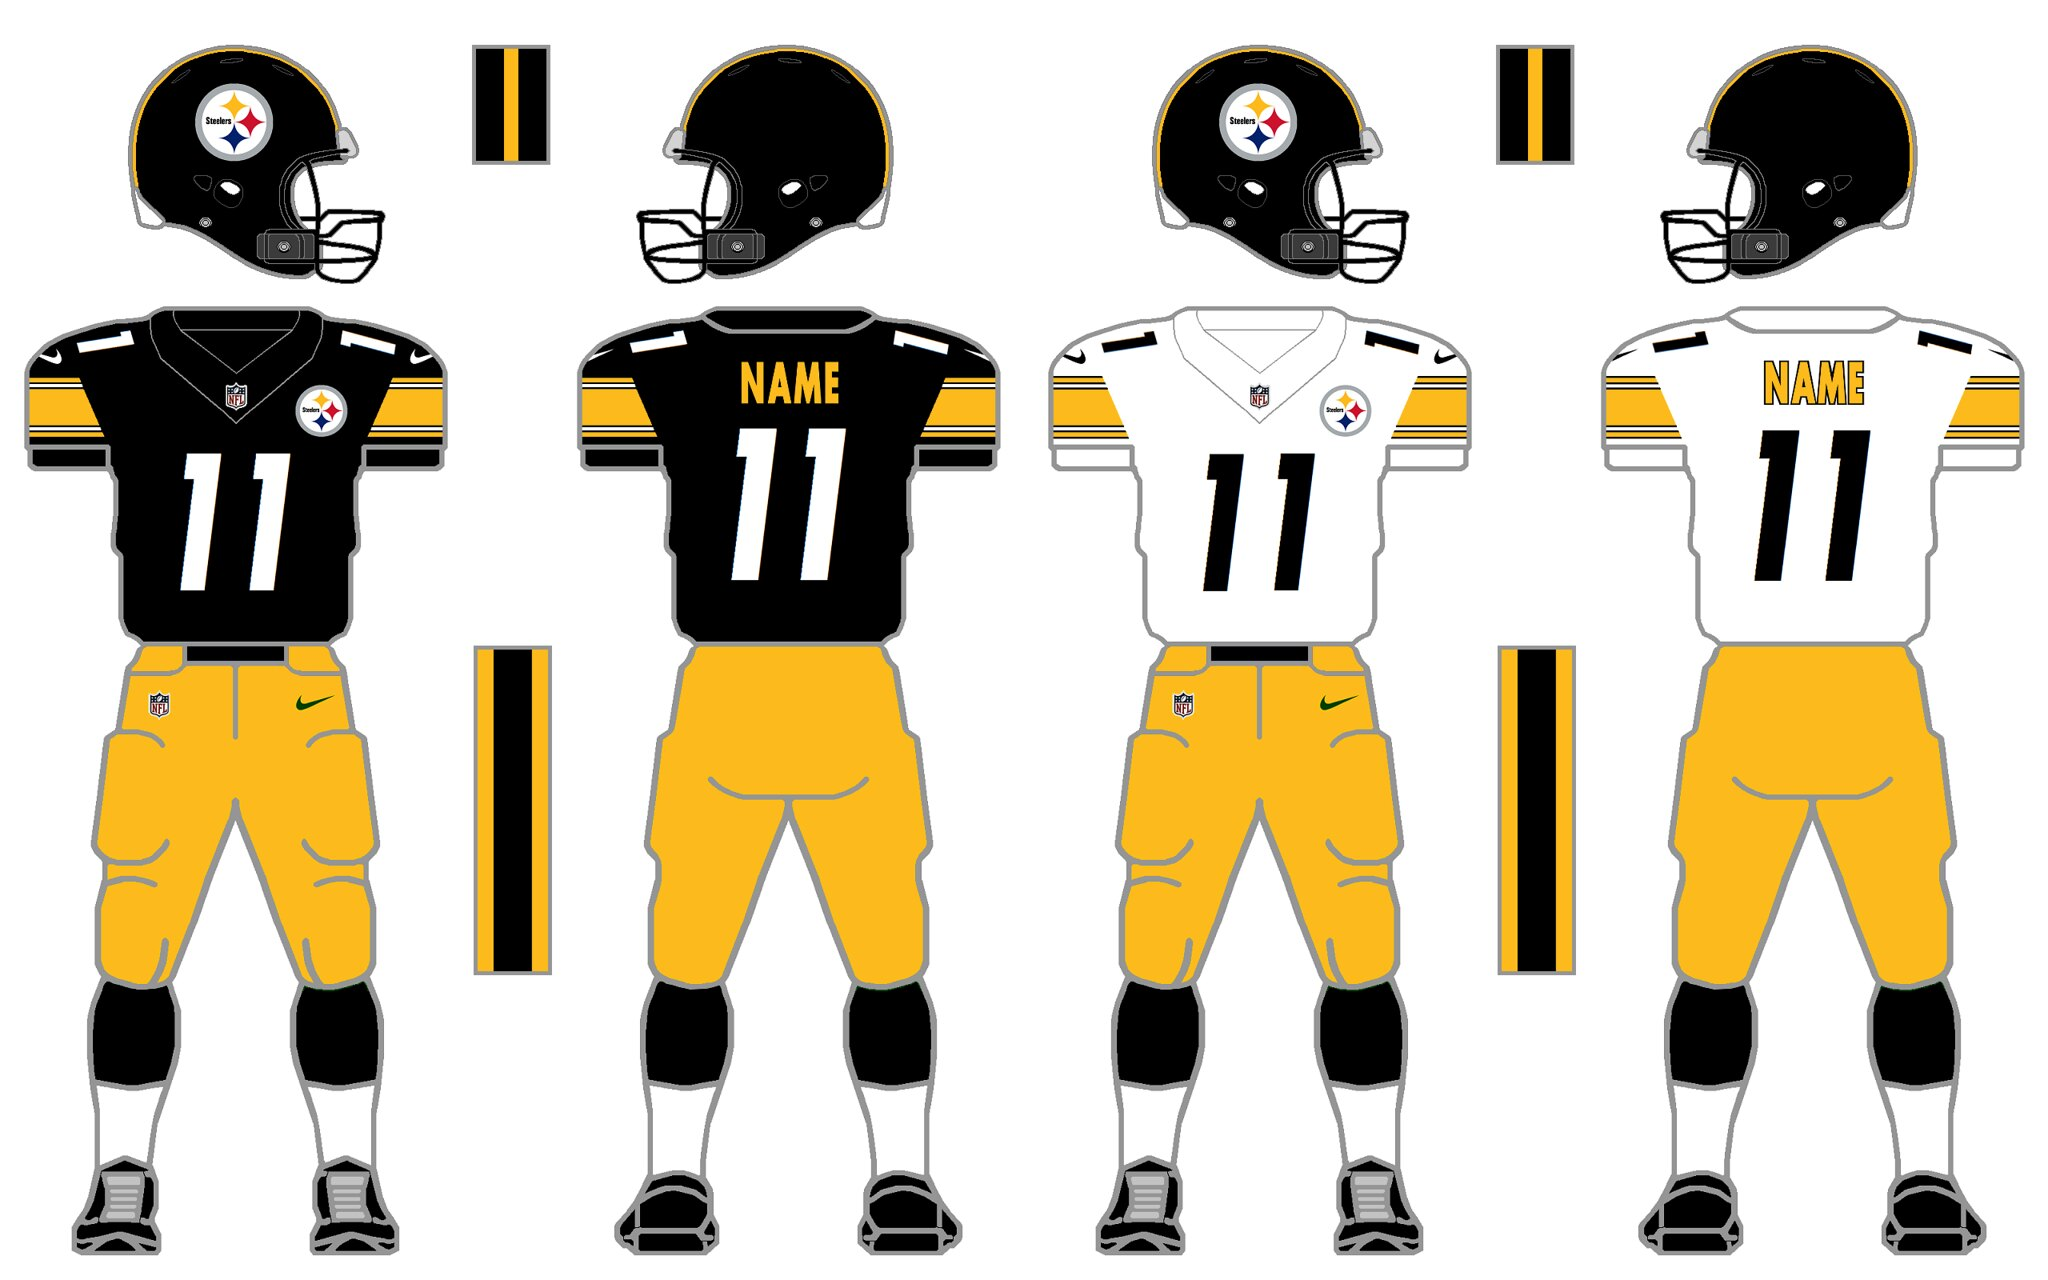 a7aca995506 ... the Steelers kinda upgraded this year and kinda downgraded this year.  They upgraded because the Nike Speed Machine uniform is very much superior  to the ...